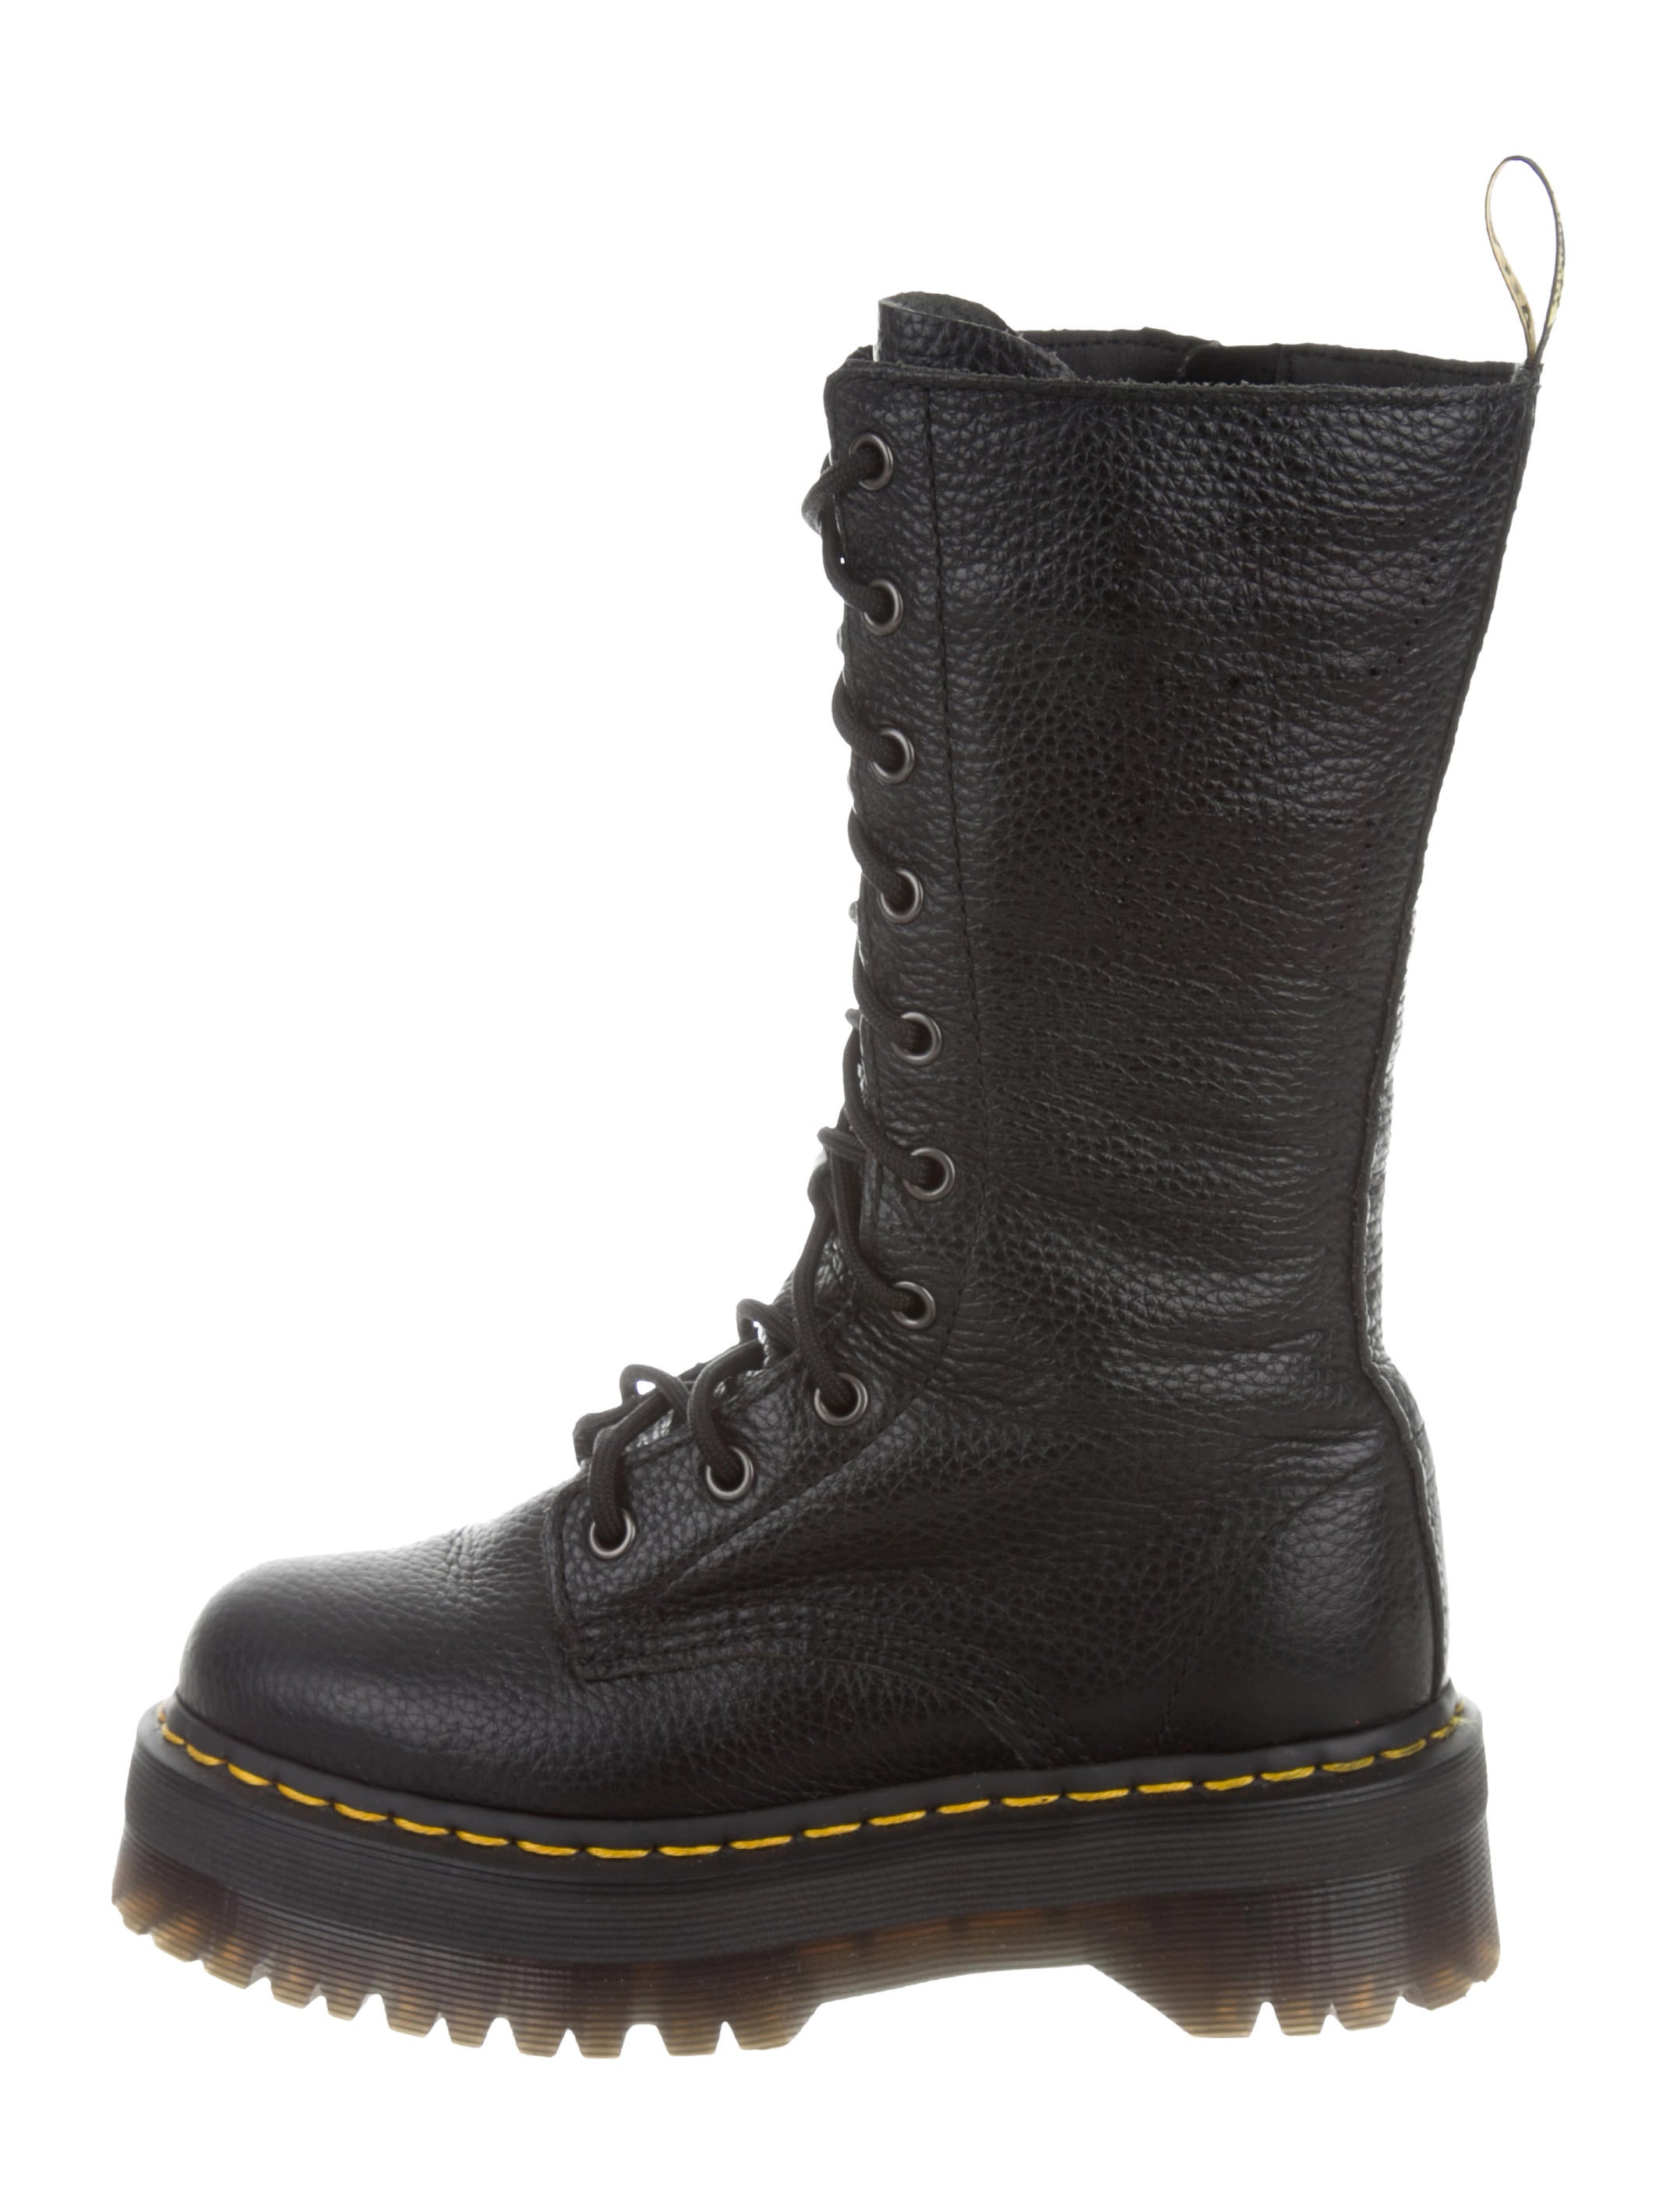 discount 2014 new browse online Dr. Martens Round-Toe Mid-Calf Boots free shipping browse 100% original cheap price vVfVqchZ1